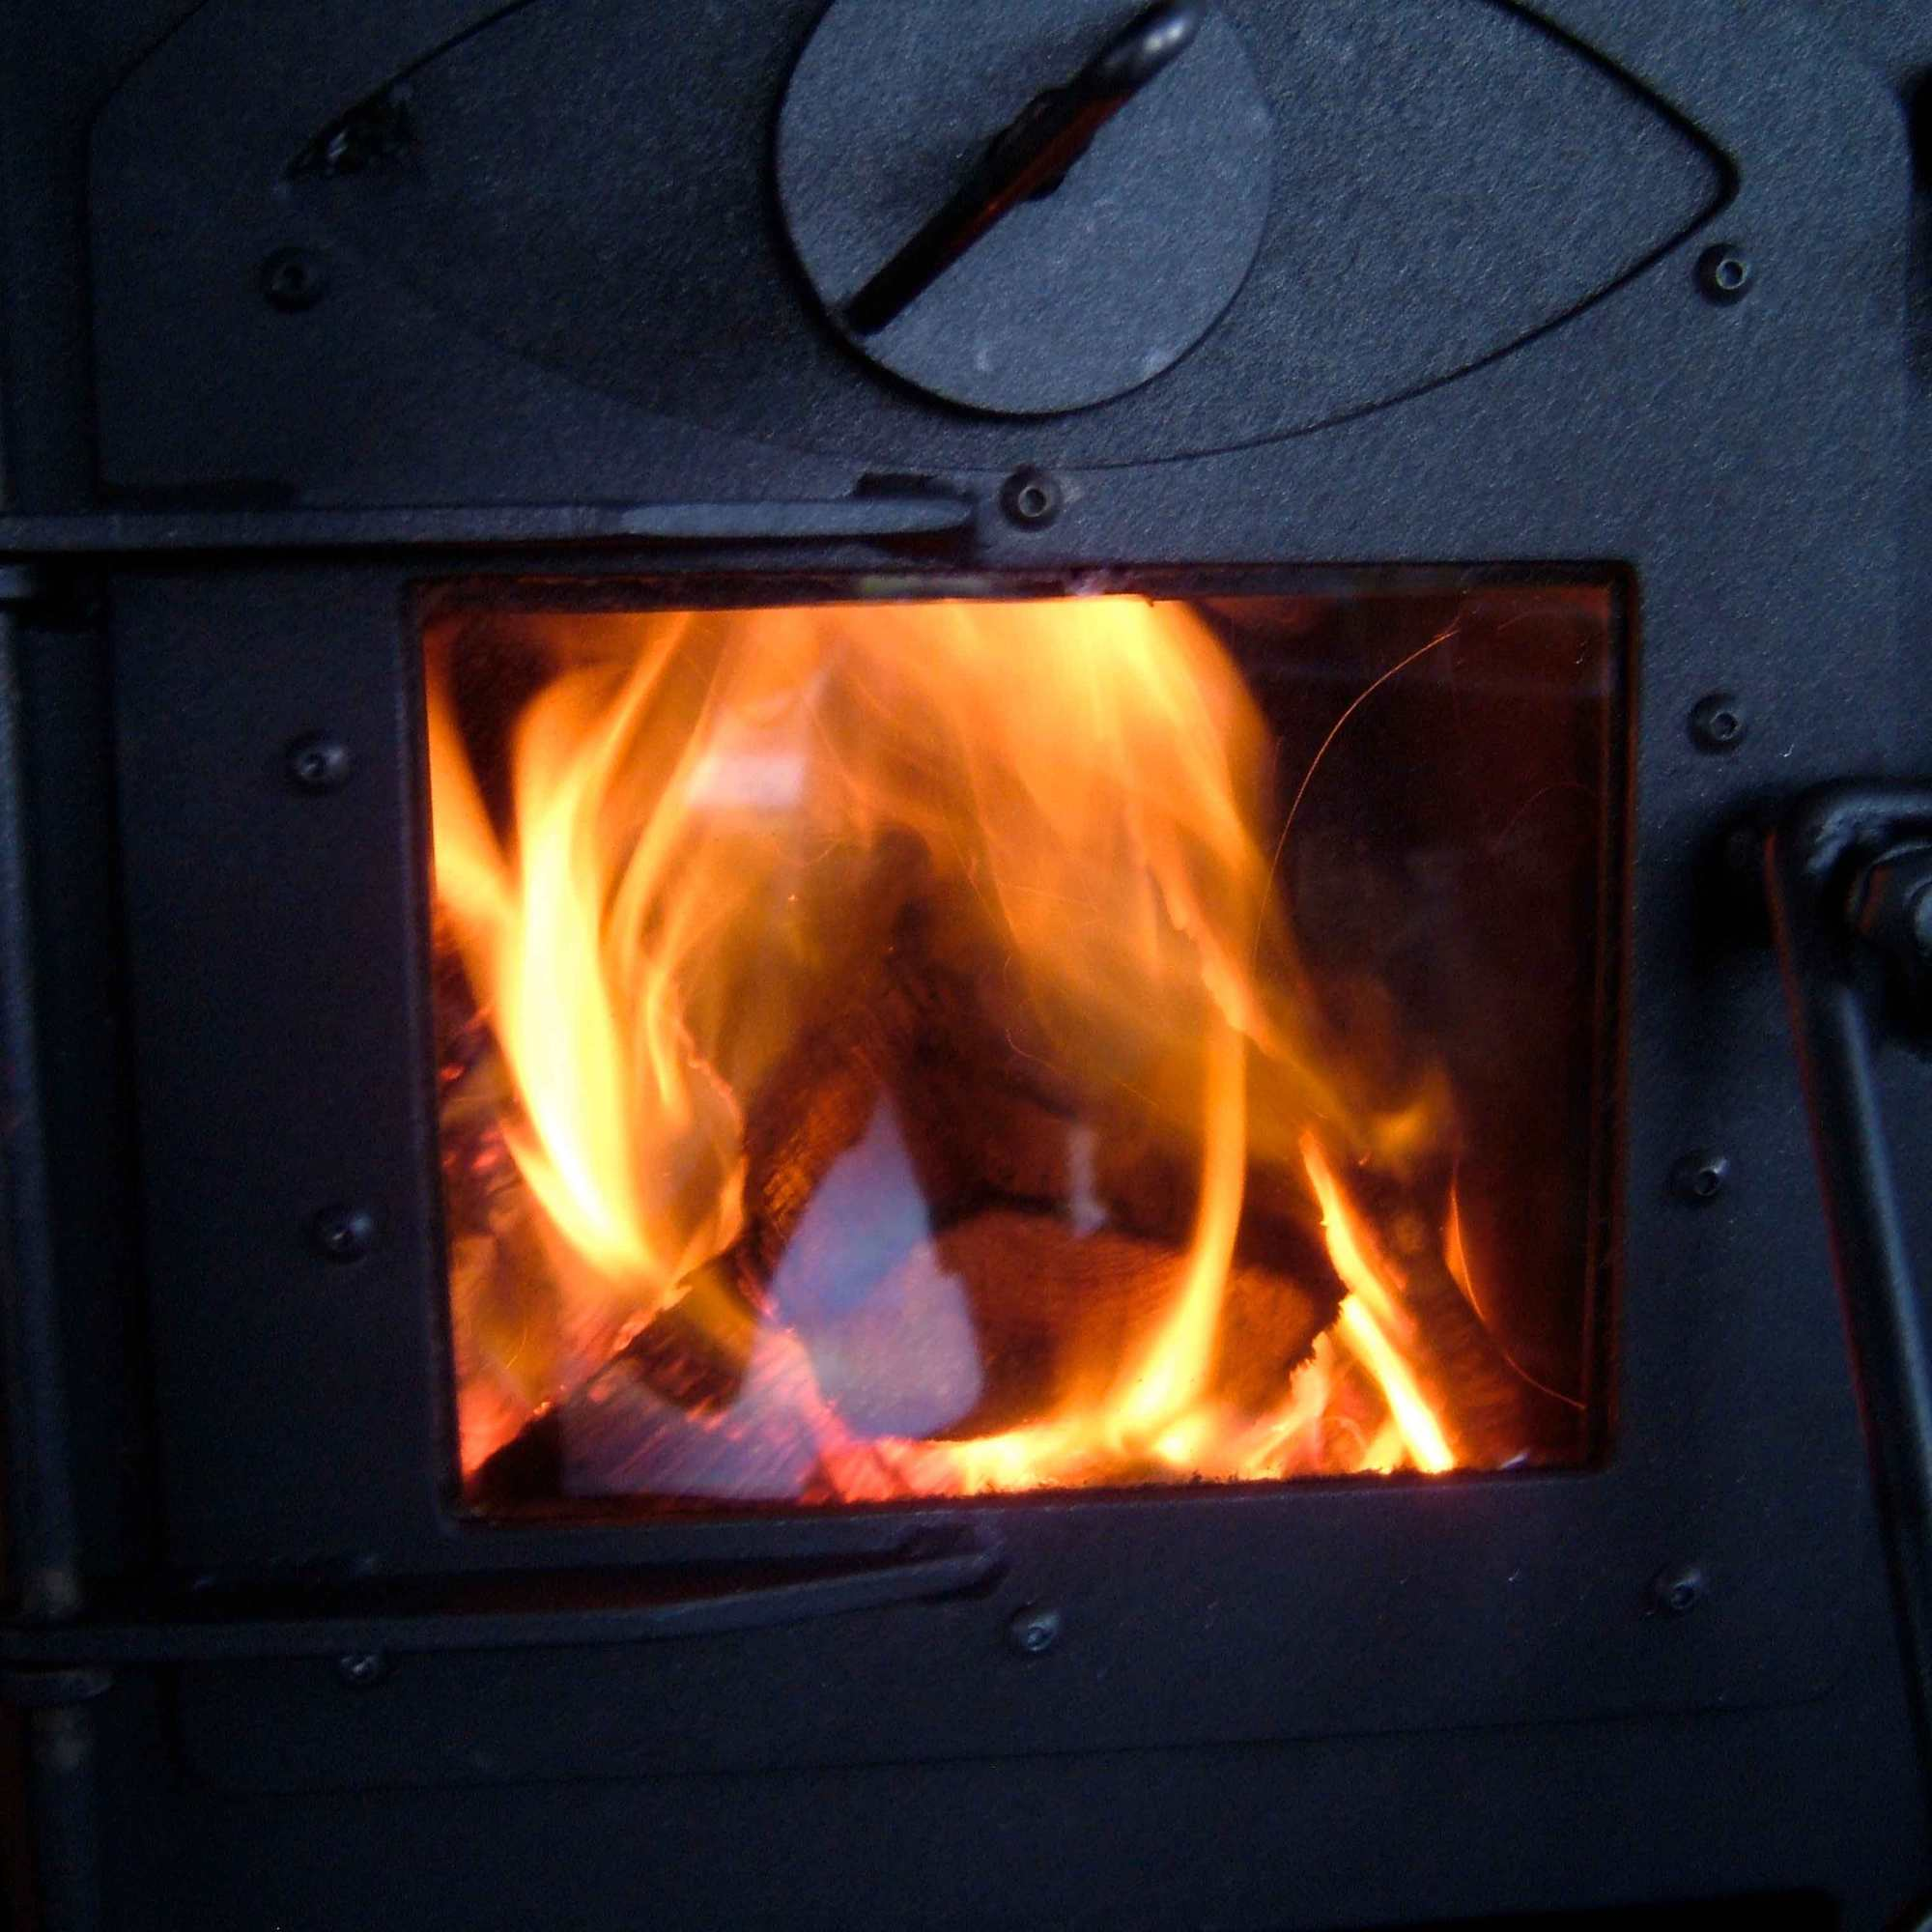 close up of a roaring fire in the wood stove